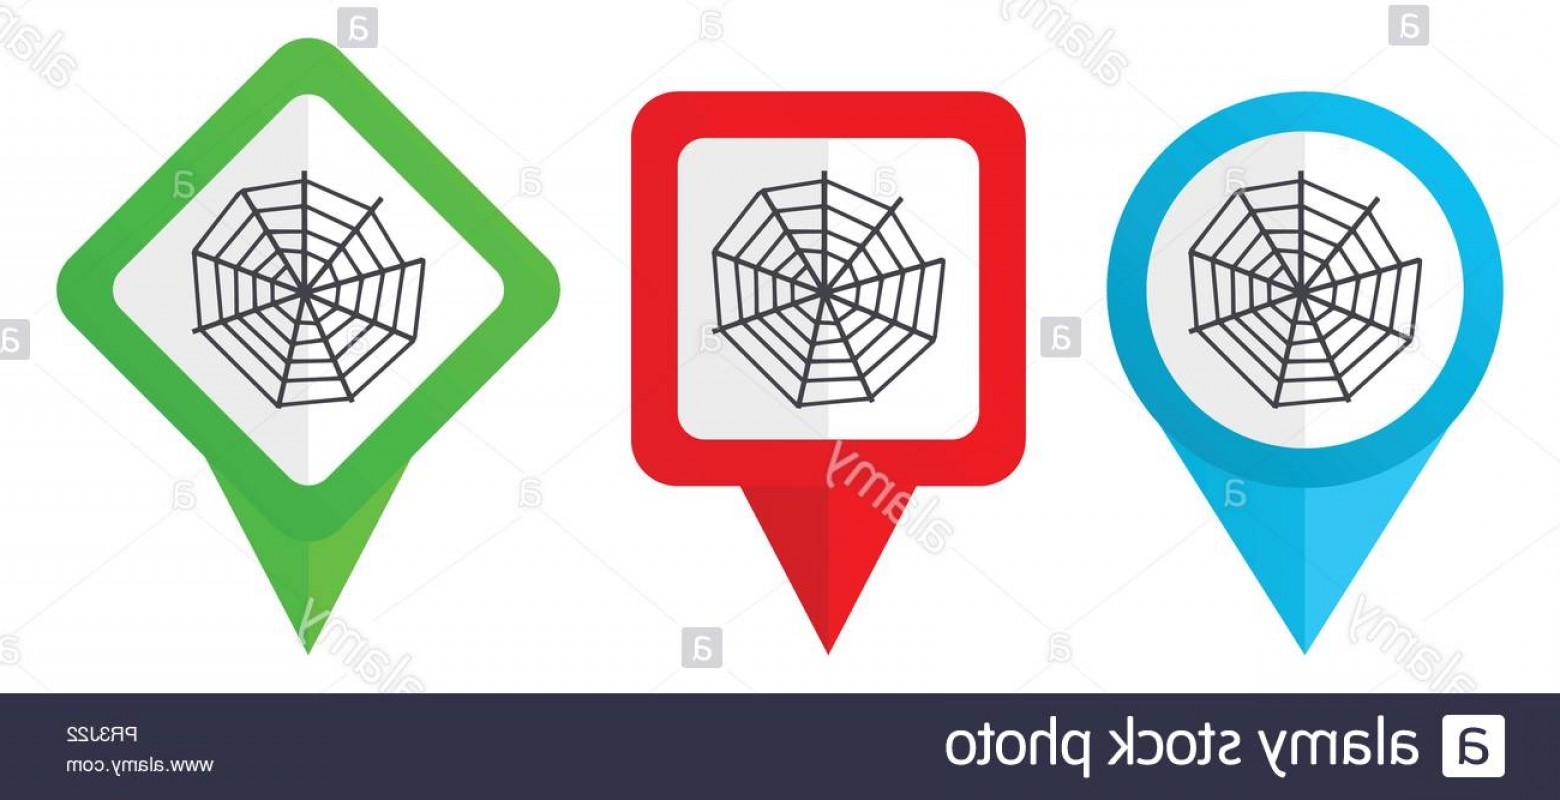 Easy Spider Vector Illustration: Spider Web Red Blue And Green Vector Pointers Icons Set Of Colorful Location Markers Isolated On White Background Easy To Edit Image